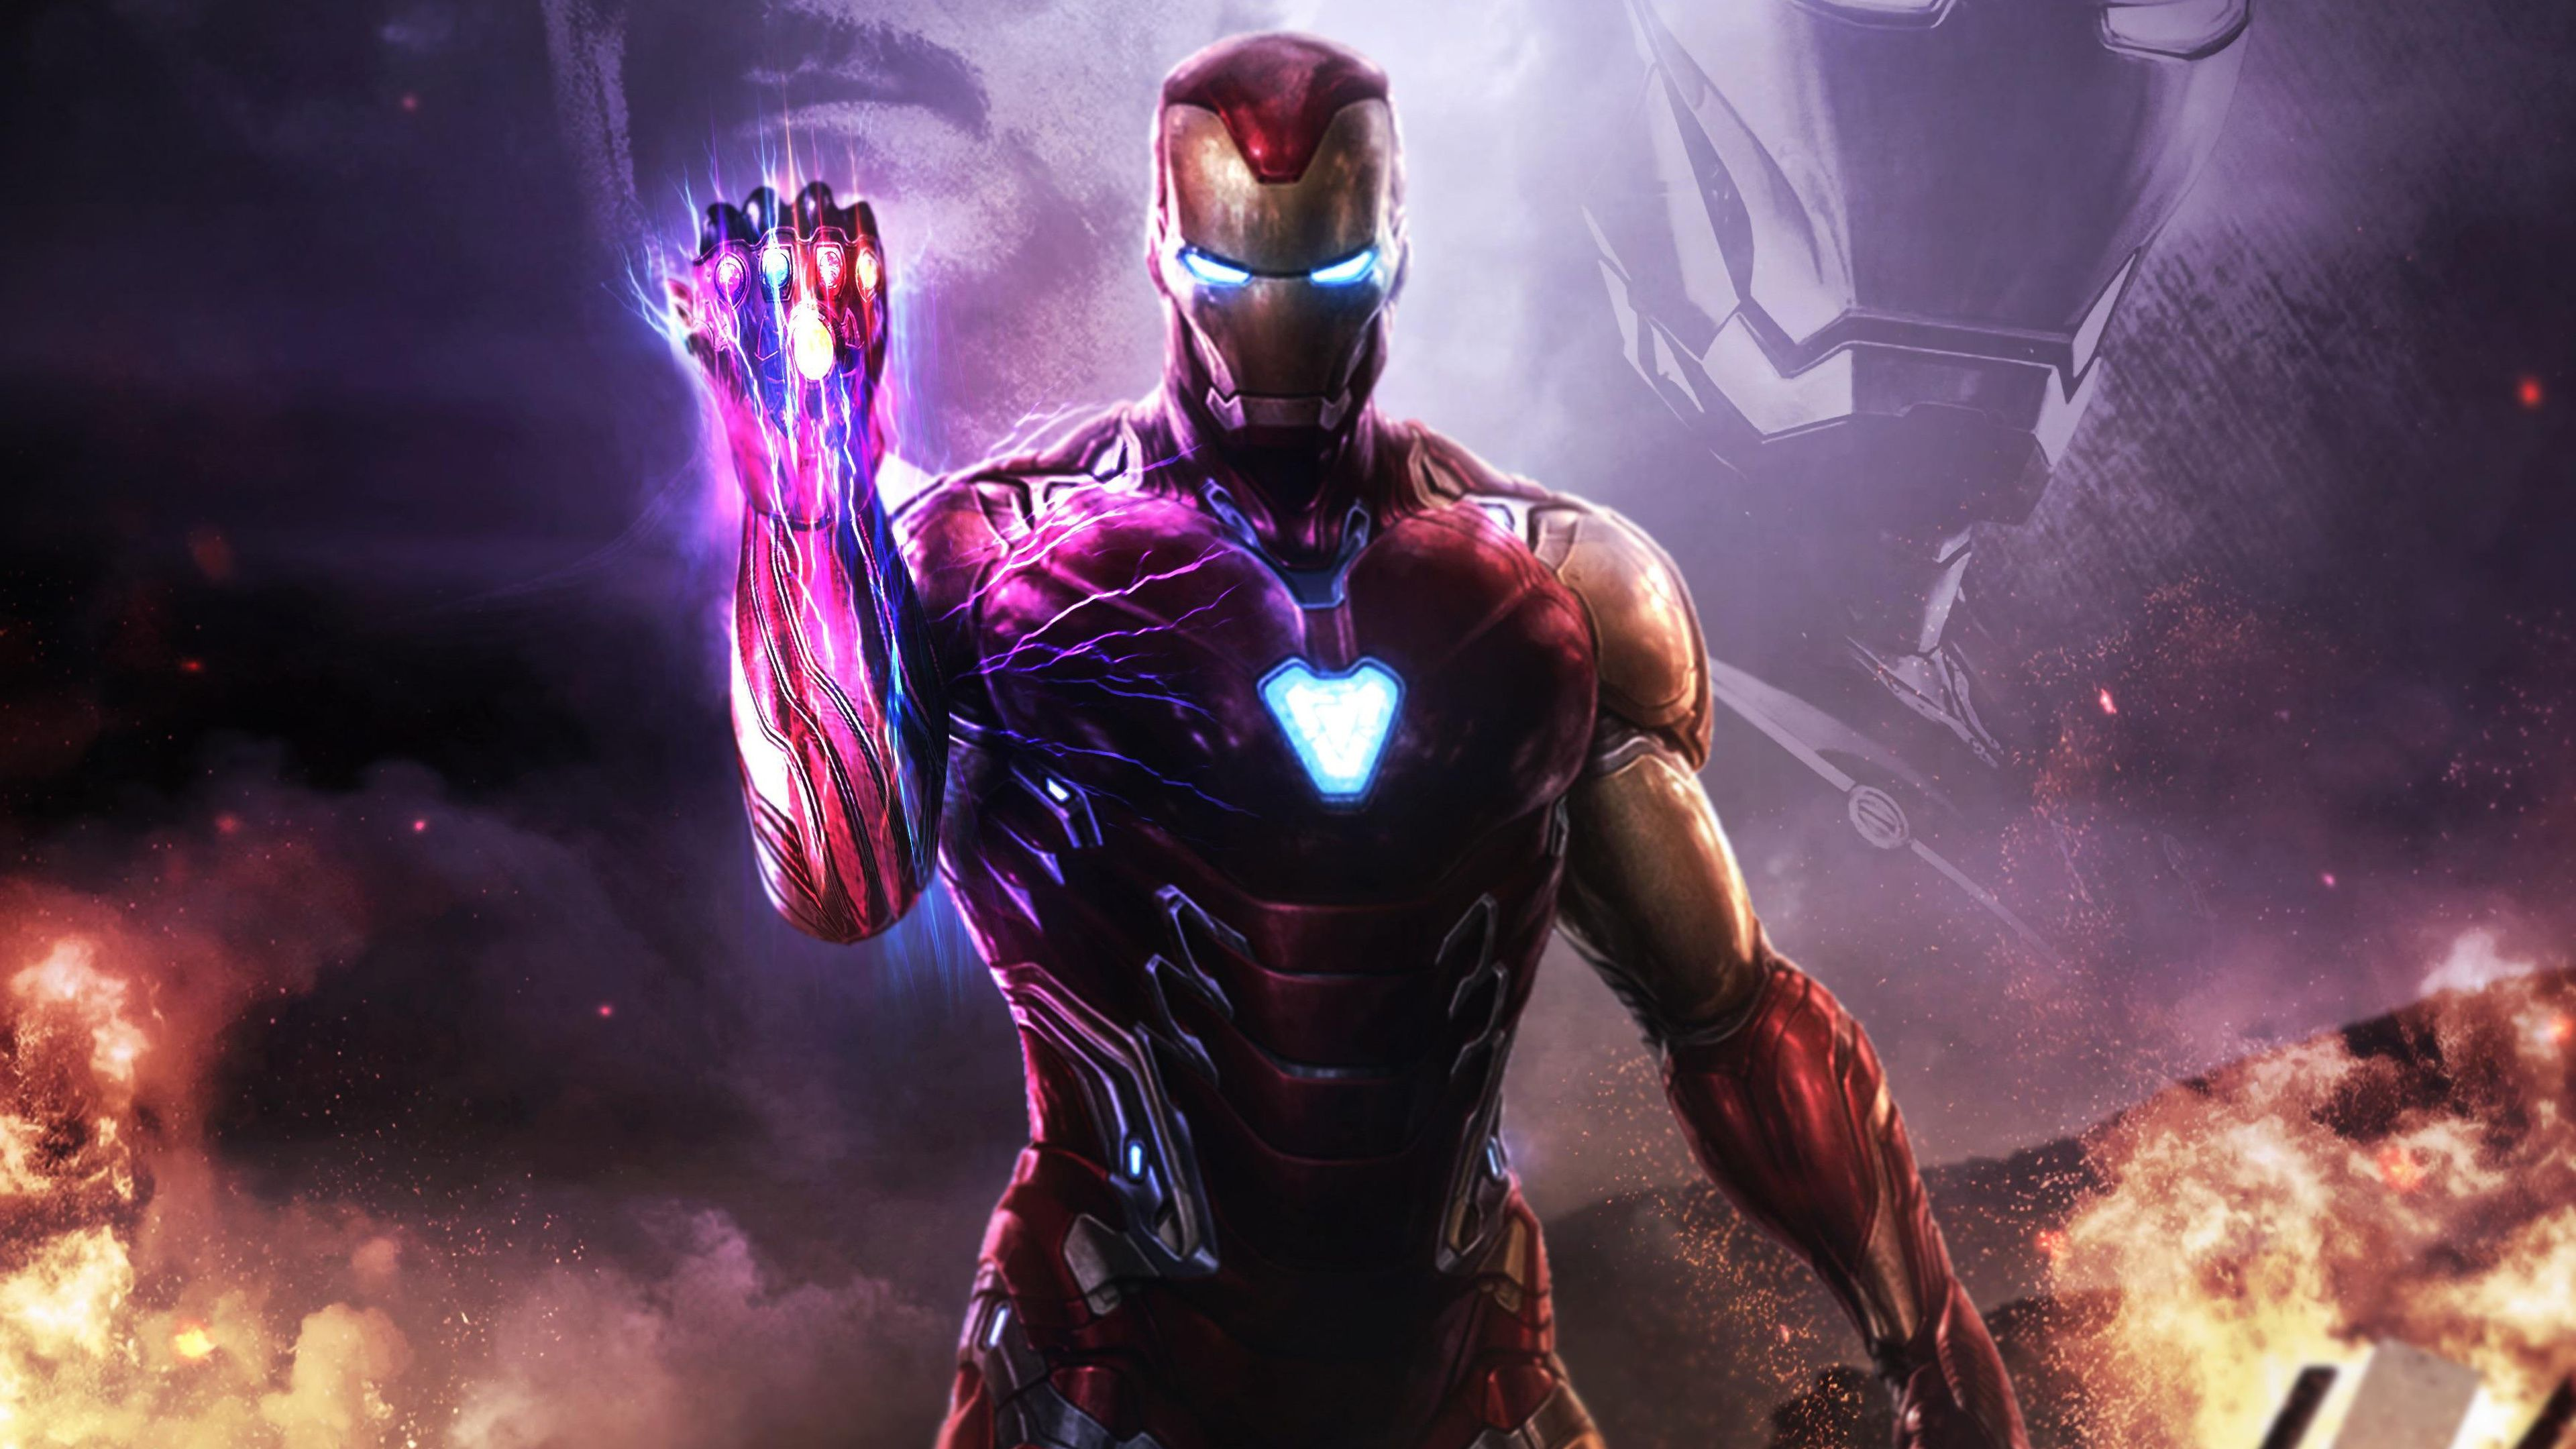 Iron Man Endgame Wallpapers Posted By John Tremblay